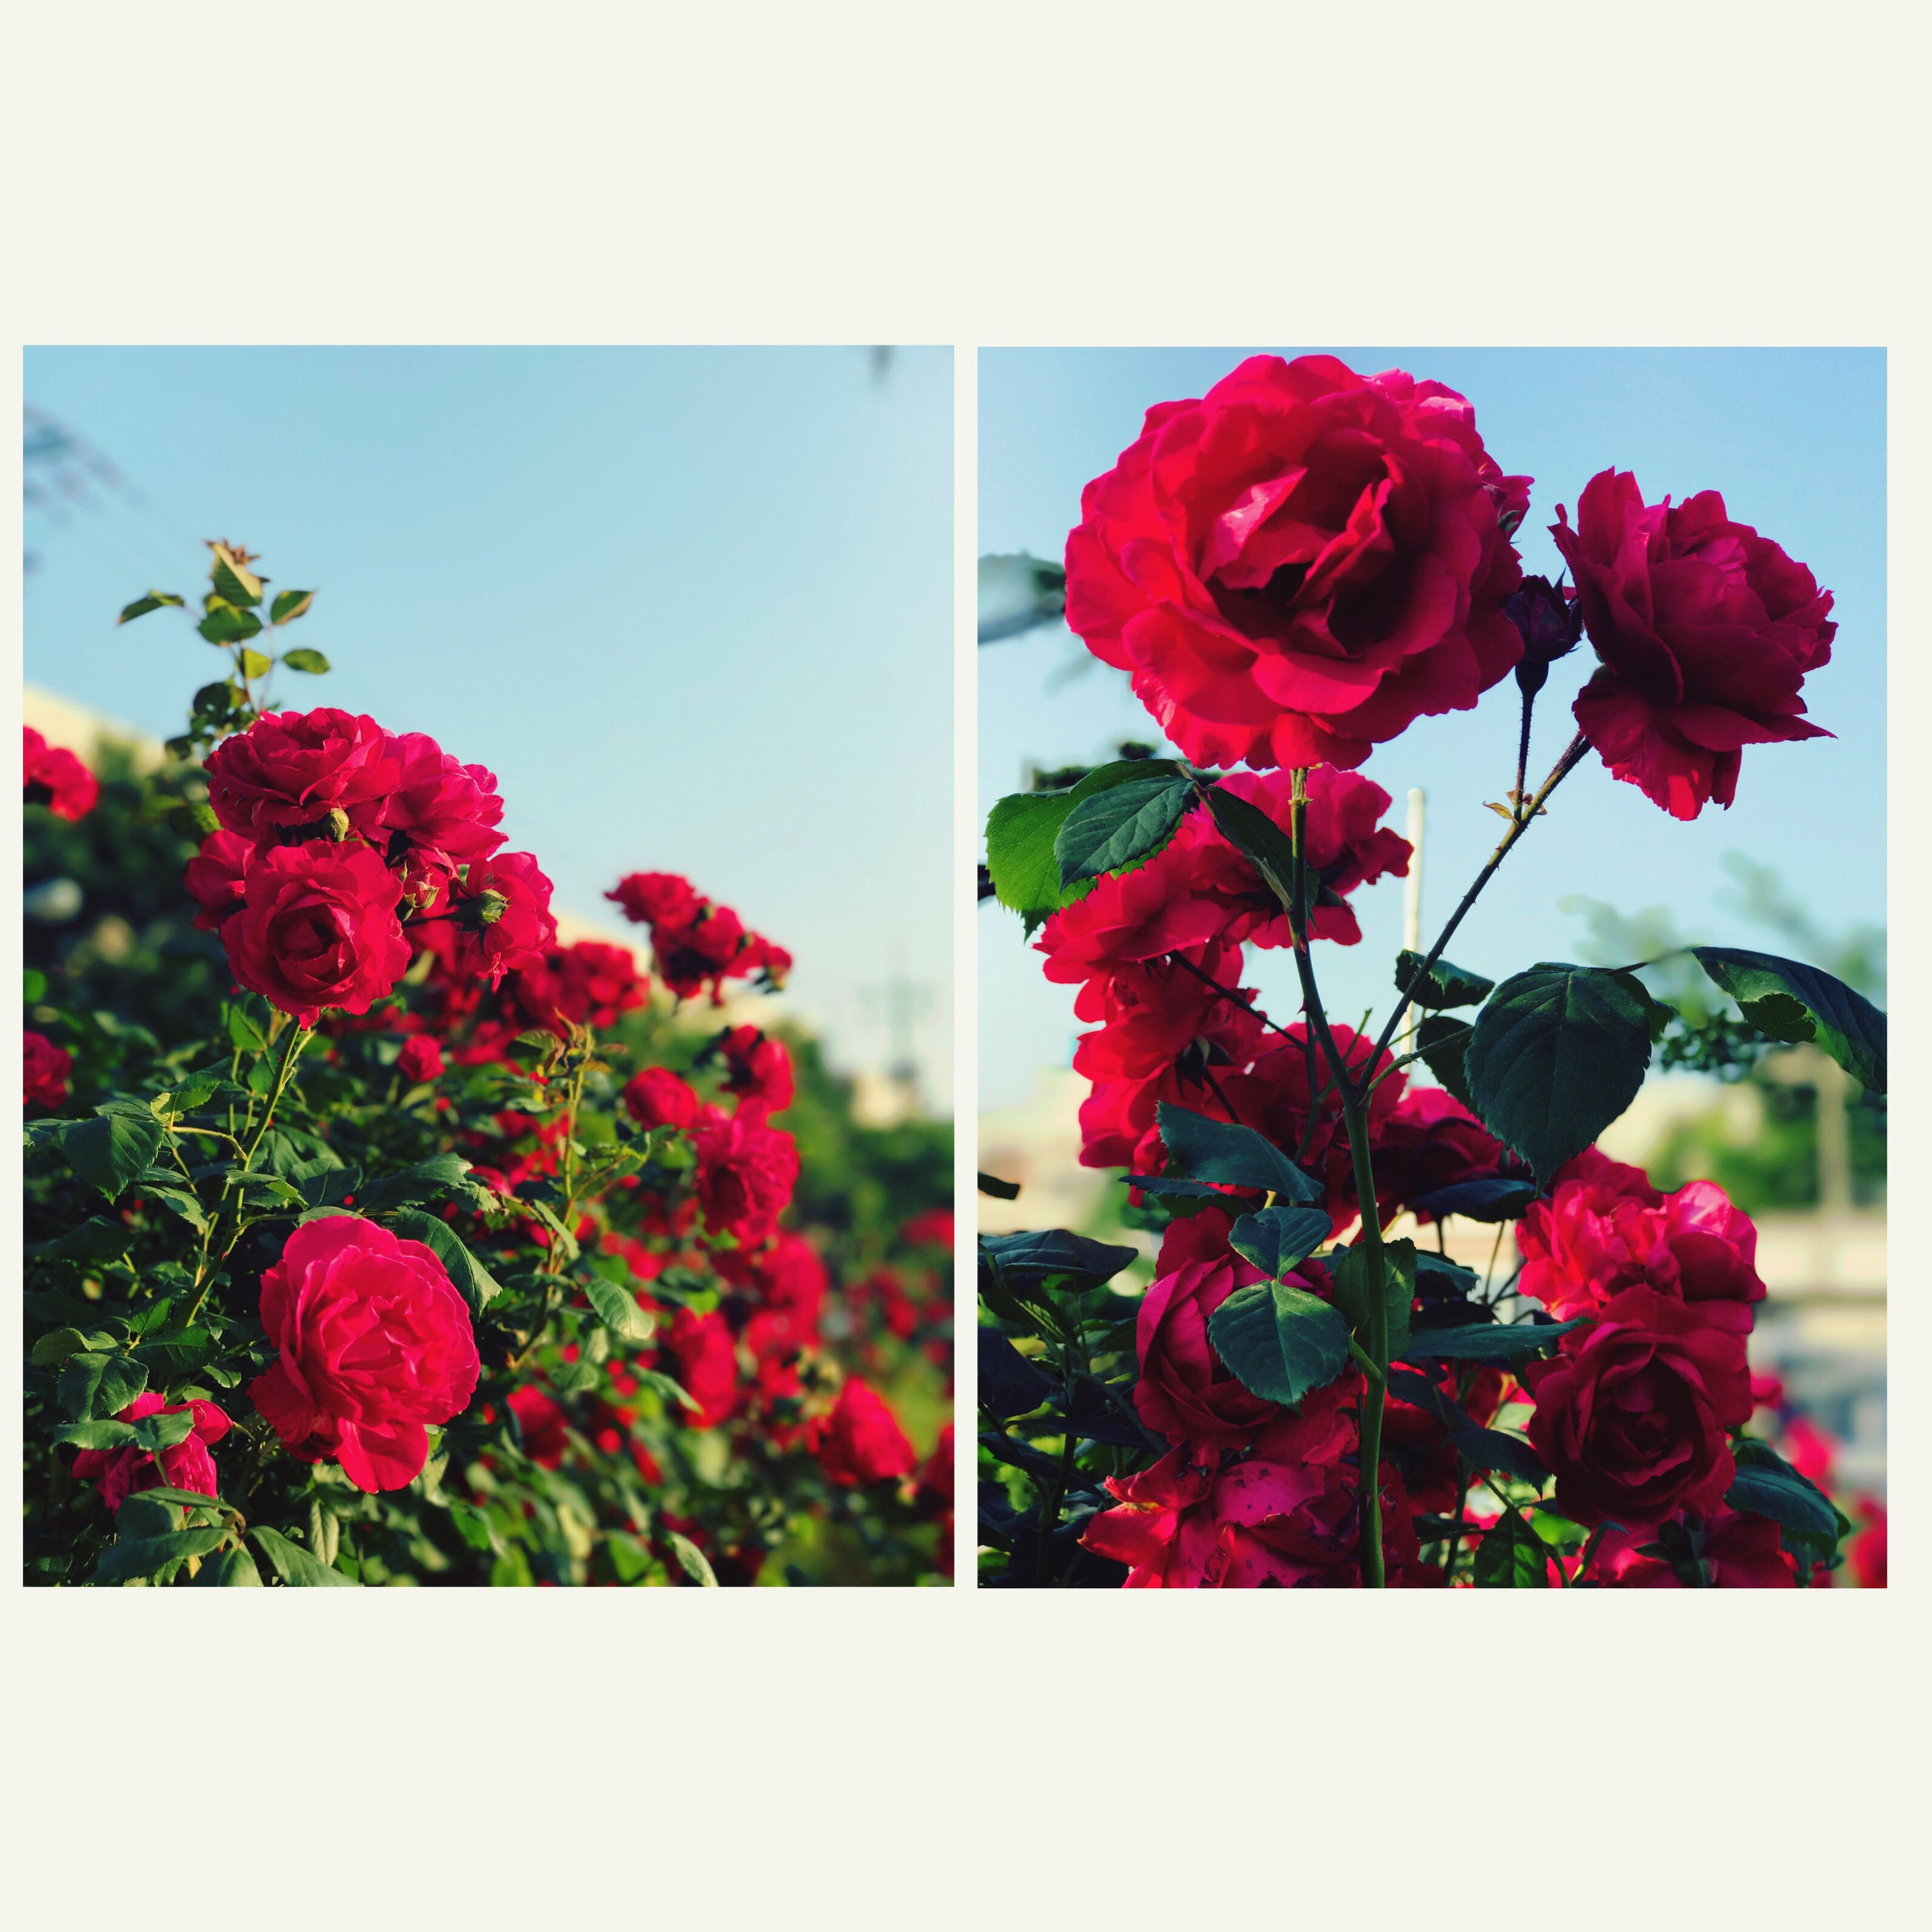 flower, nature, beauty in nature, growth, plant, fragility, petal, freshness, red, flower head, collage, no people, blooming, outdoors, close-up, day